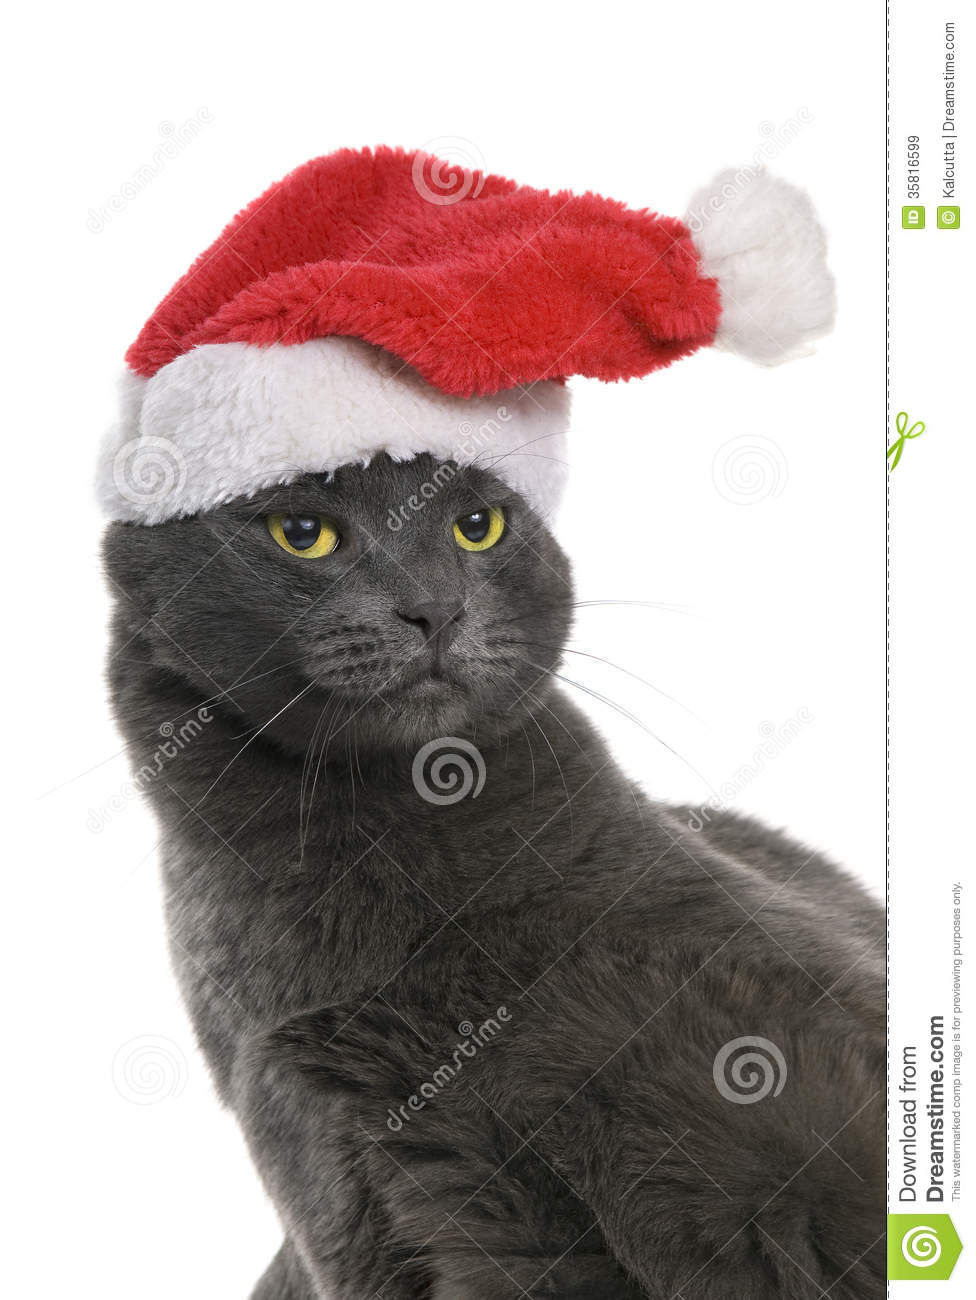 Fluffy White And Grey Cat Christmas Cat - Gray C...